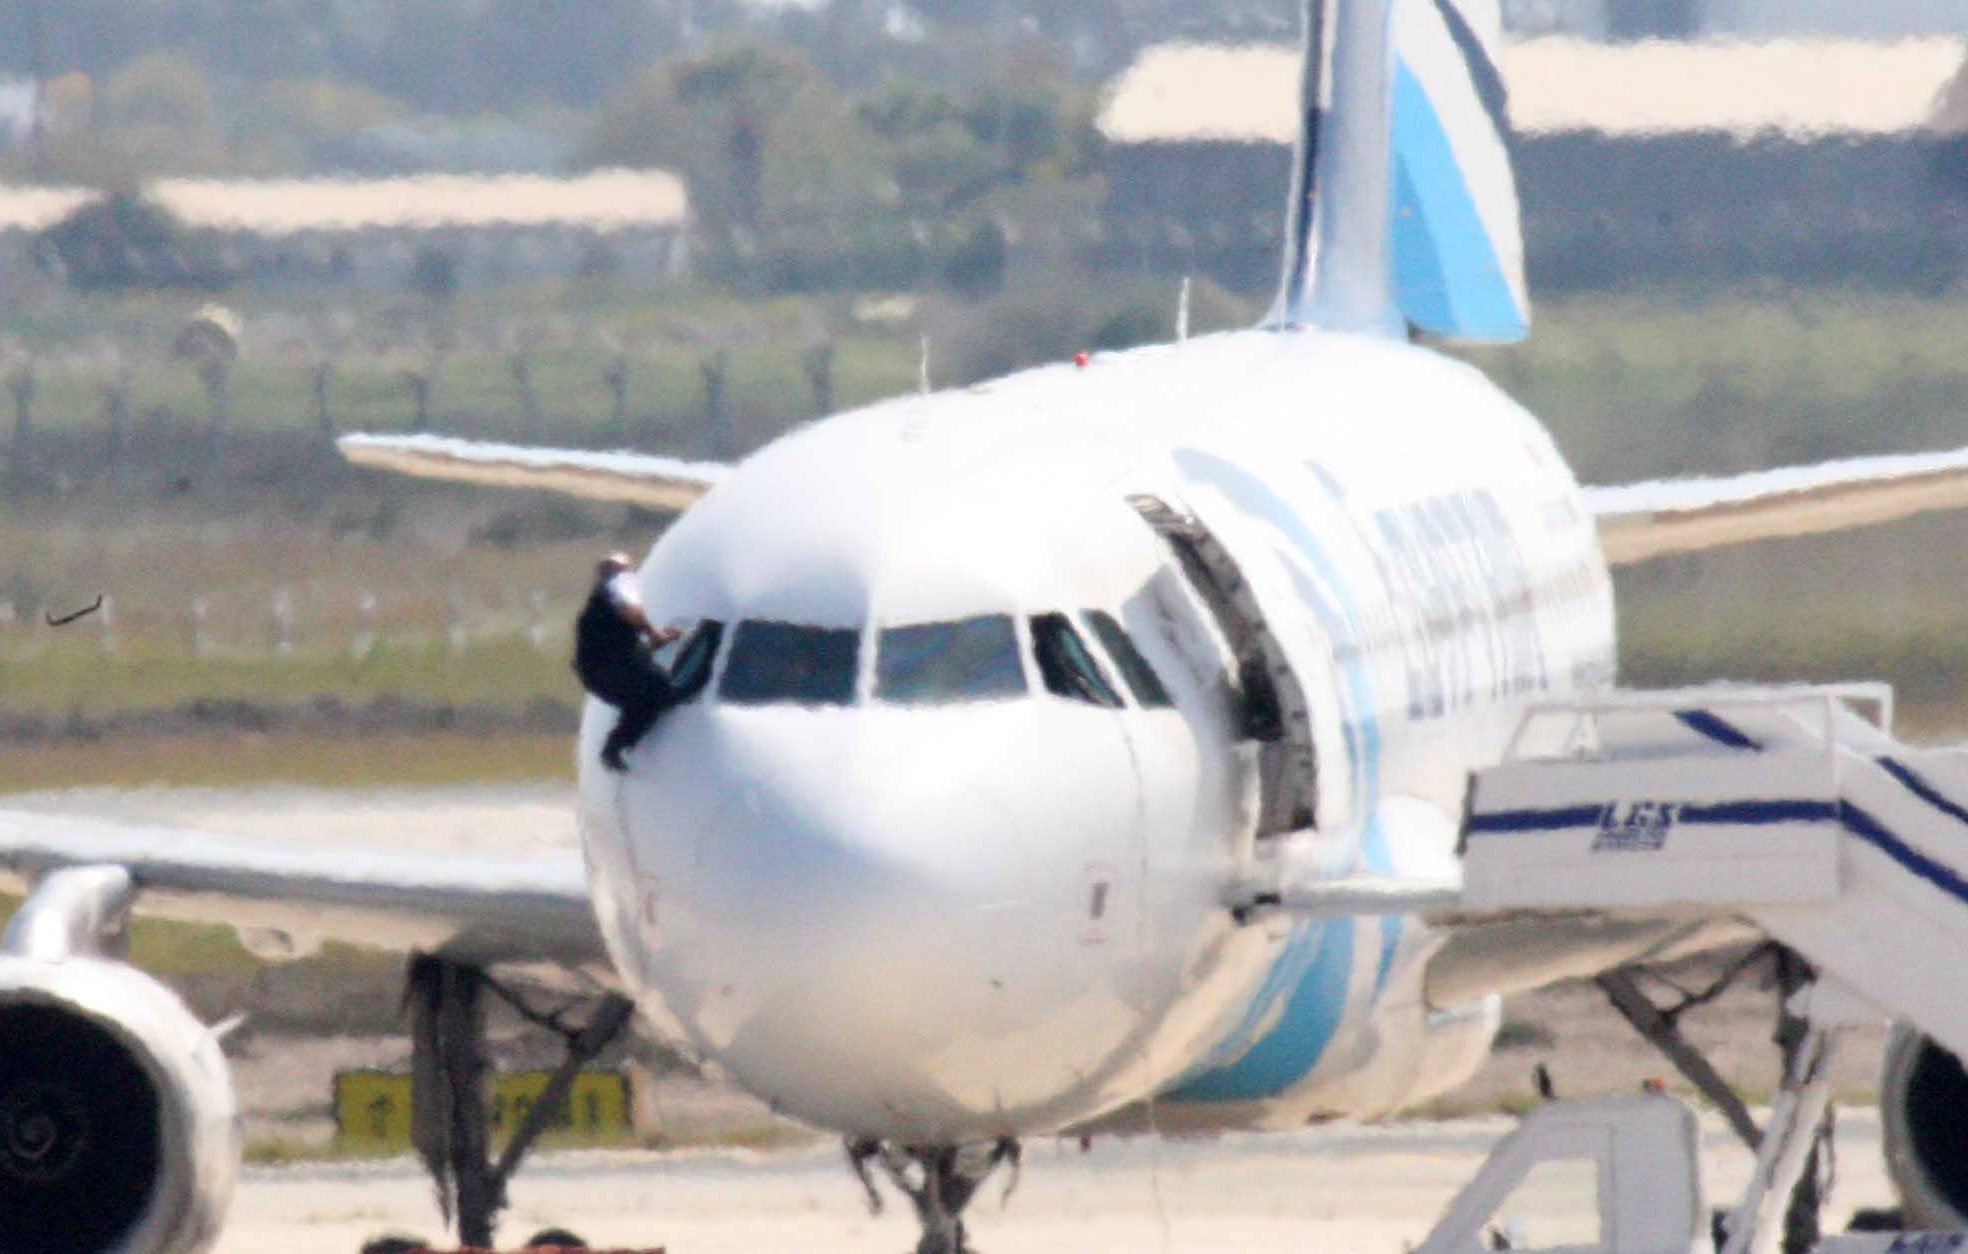 Plane And Pilot >> EgyptAir plane hijacked, diverted to Cyprus, officials say - LA Times